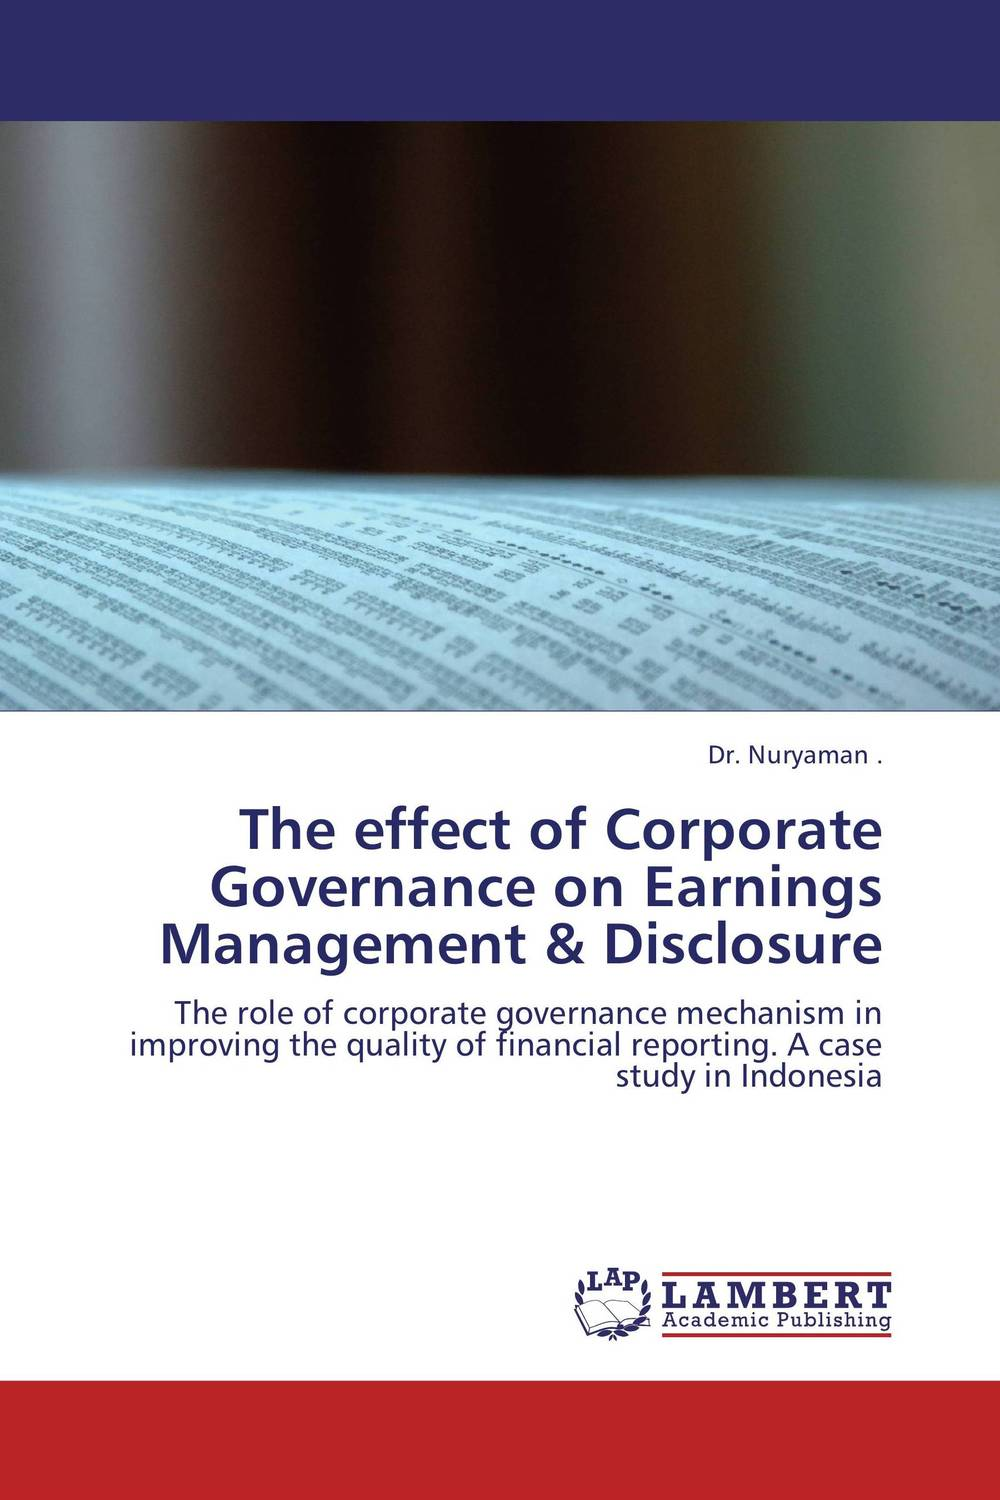 The effect of Corporate Governance on Earnings Management & Disclosure sim segal corporate value of enterprise risk management the next step in business management